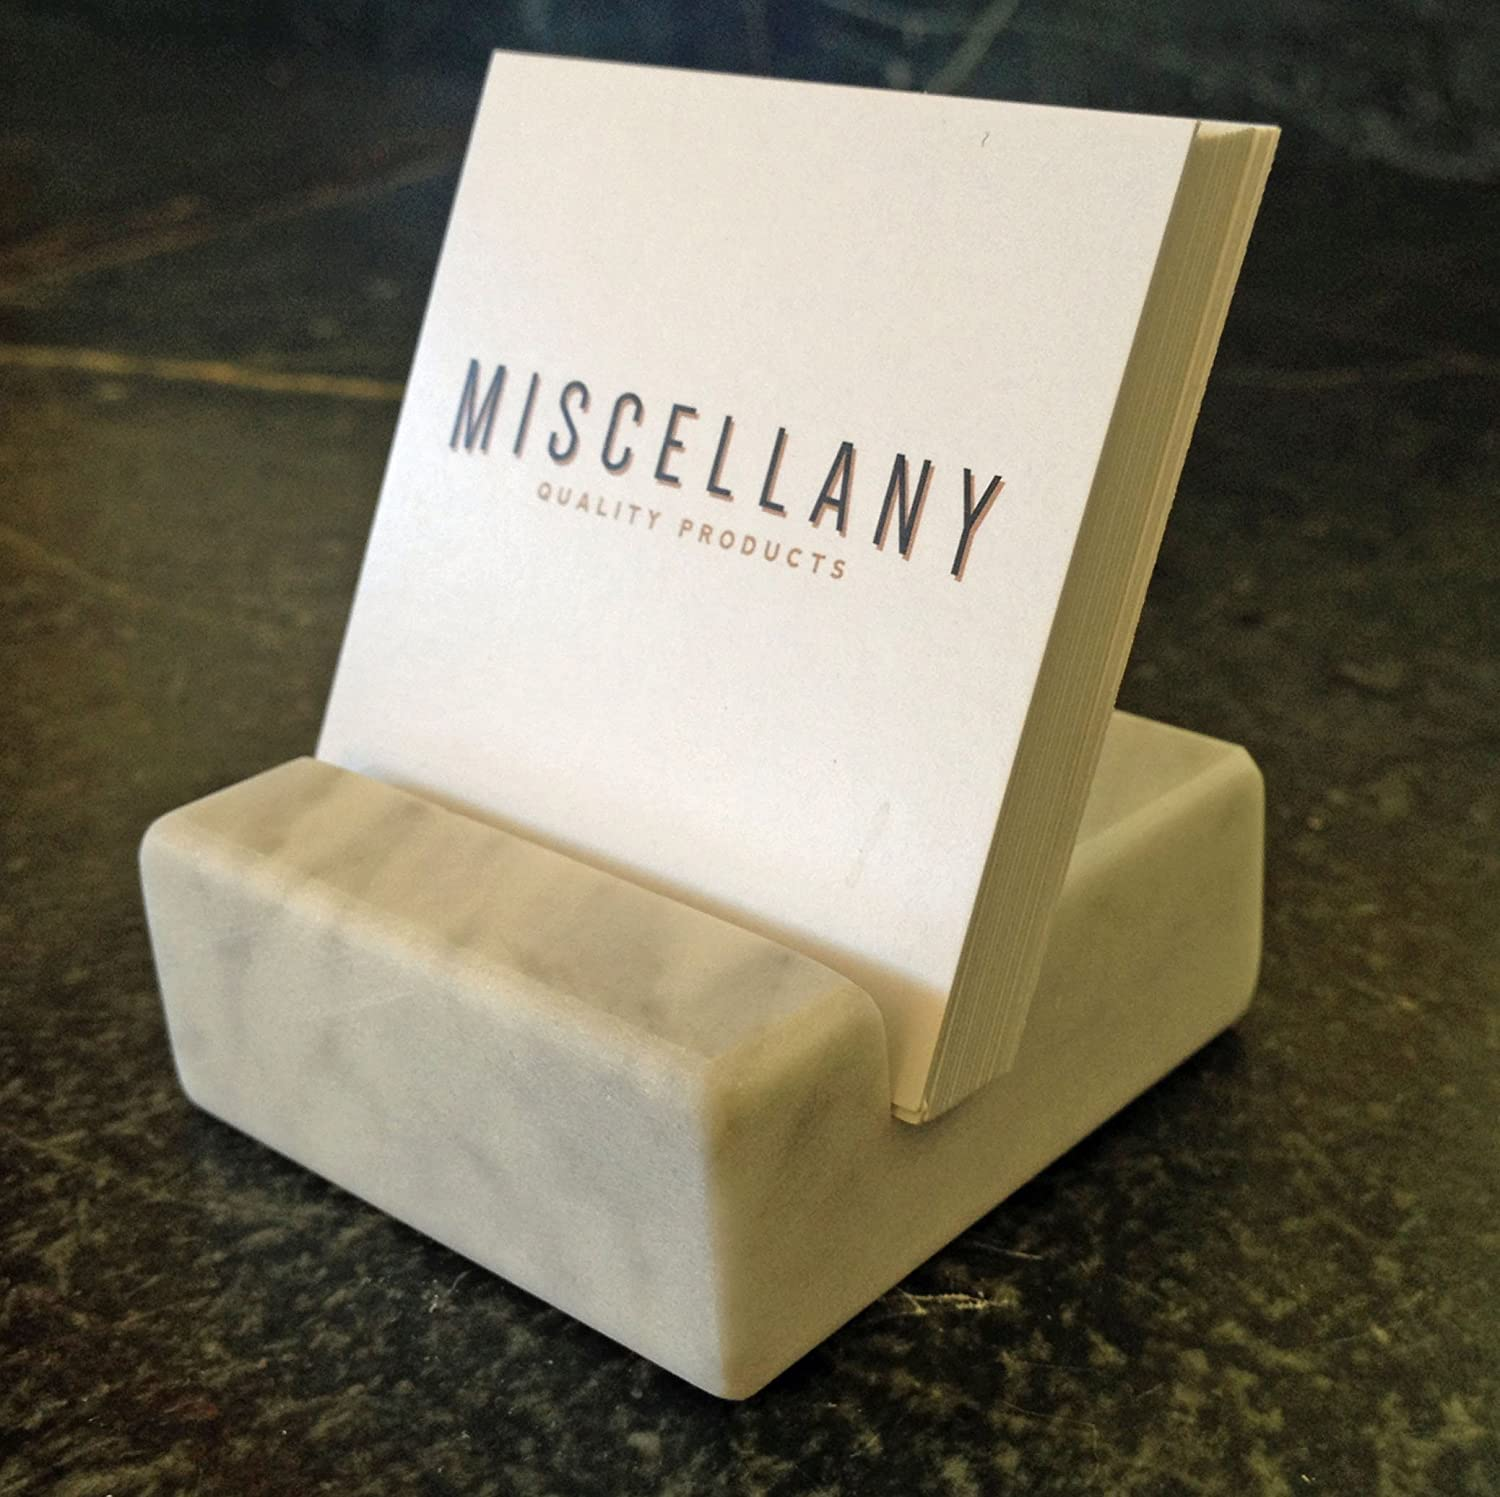 Amazon.com : Square Business Card Holder White Carrara Marble ...